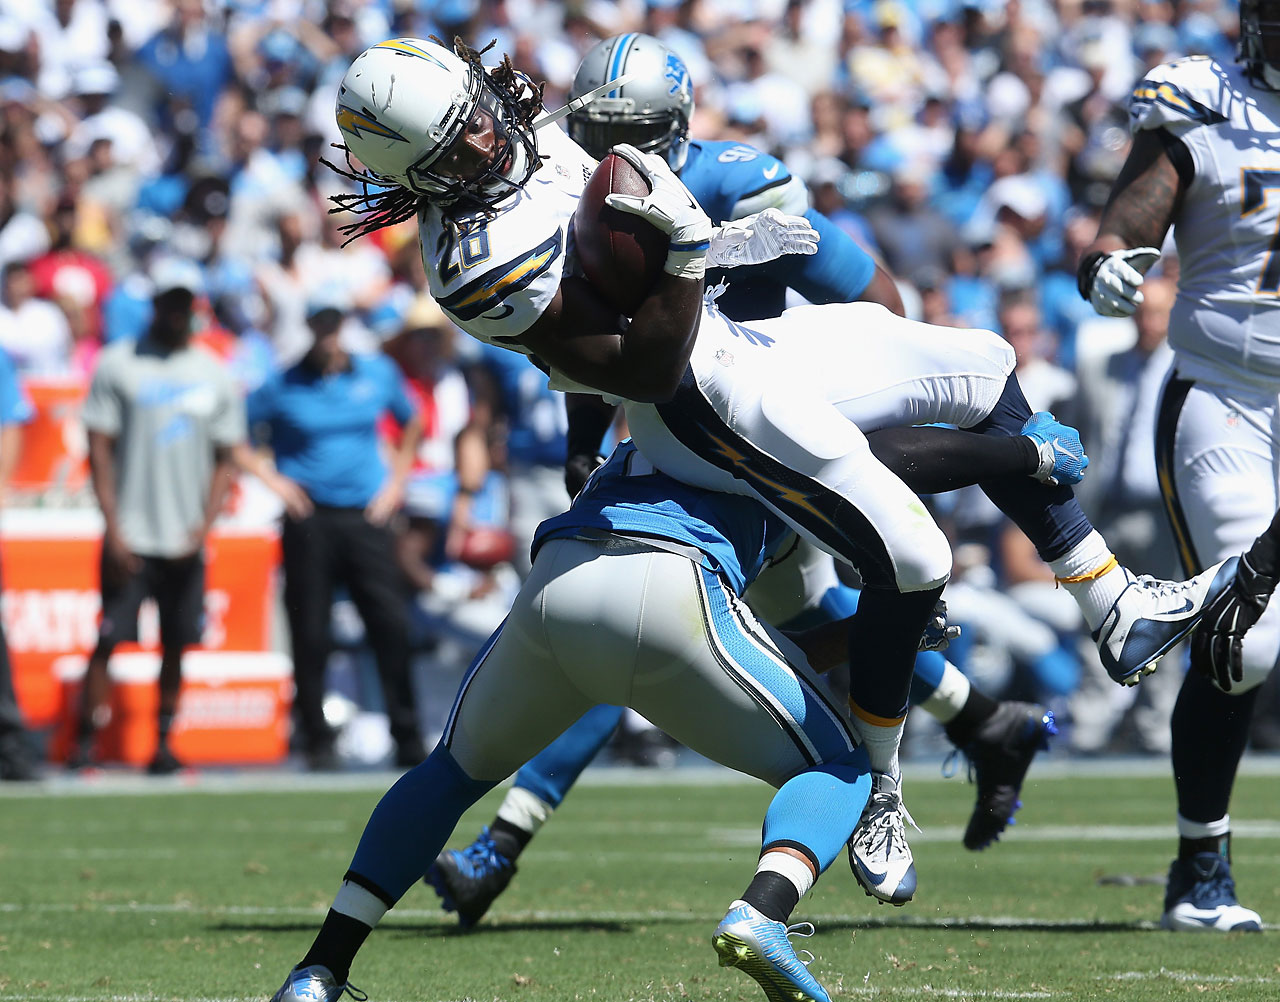 Running back Melvin Gordon of the San Diego Chargers is tackled by the Detroit Lions defense.